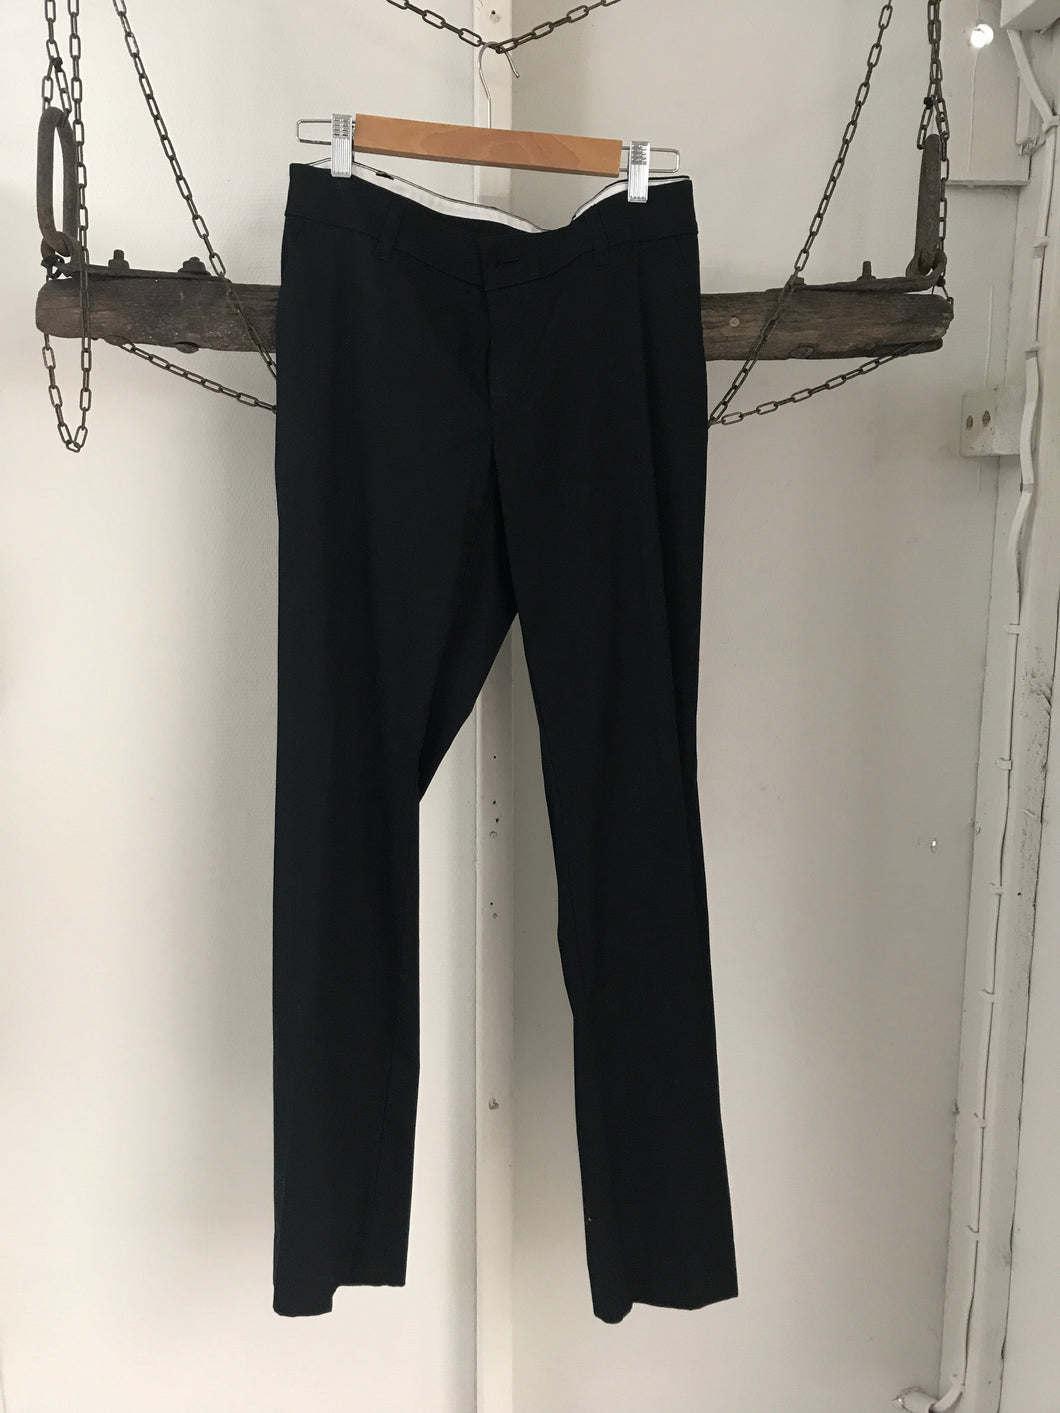 Esprit Black Dress Pants 16